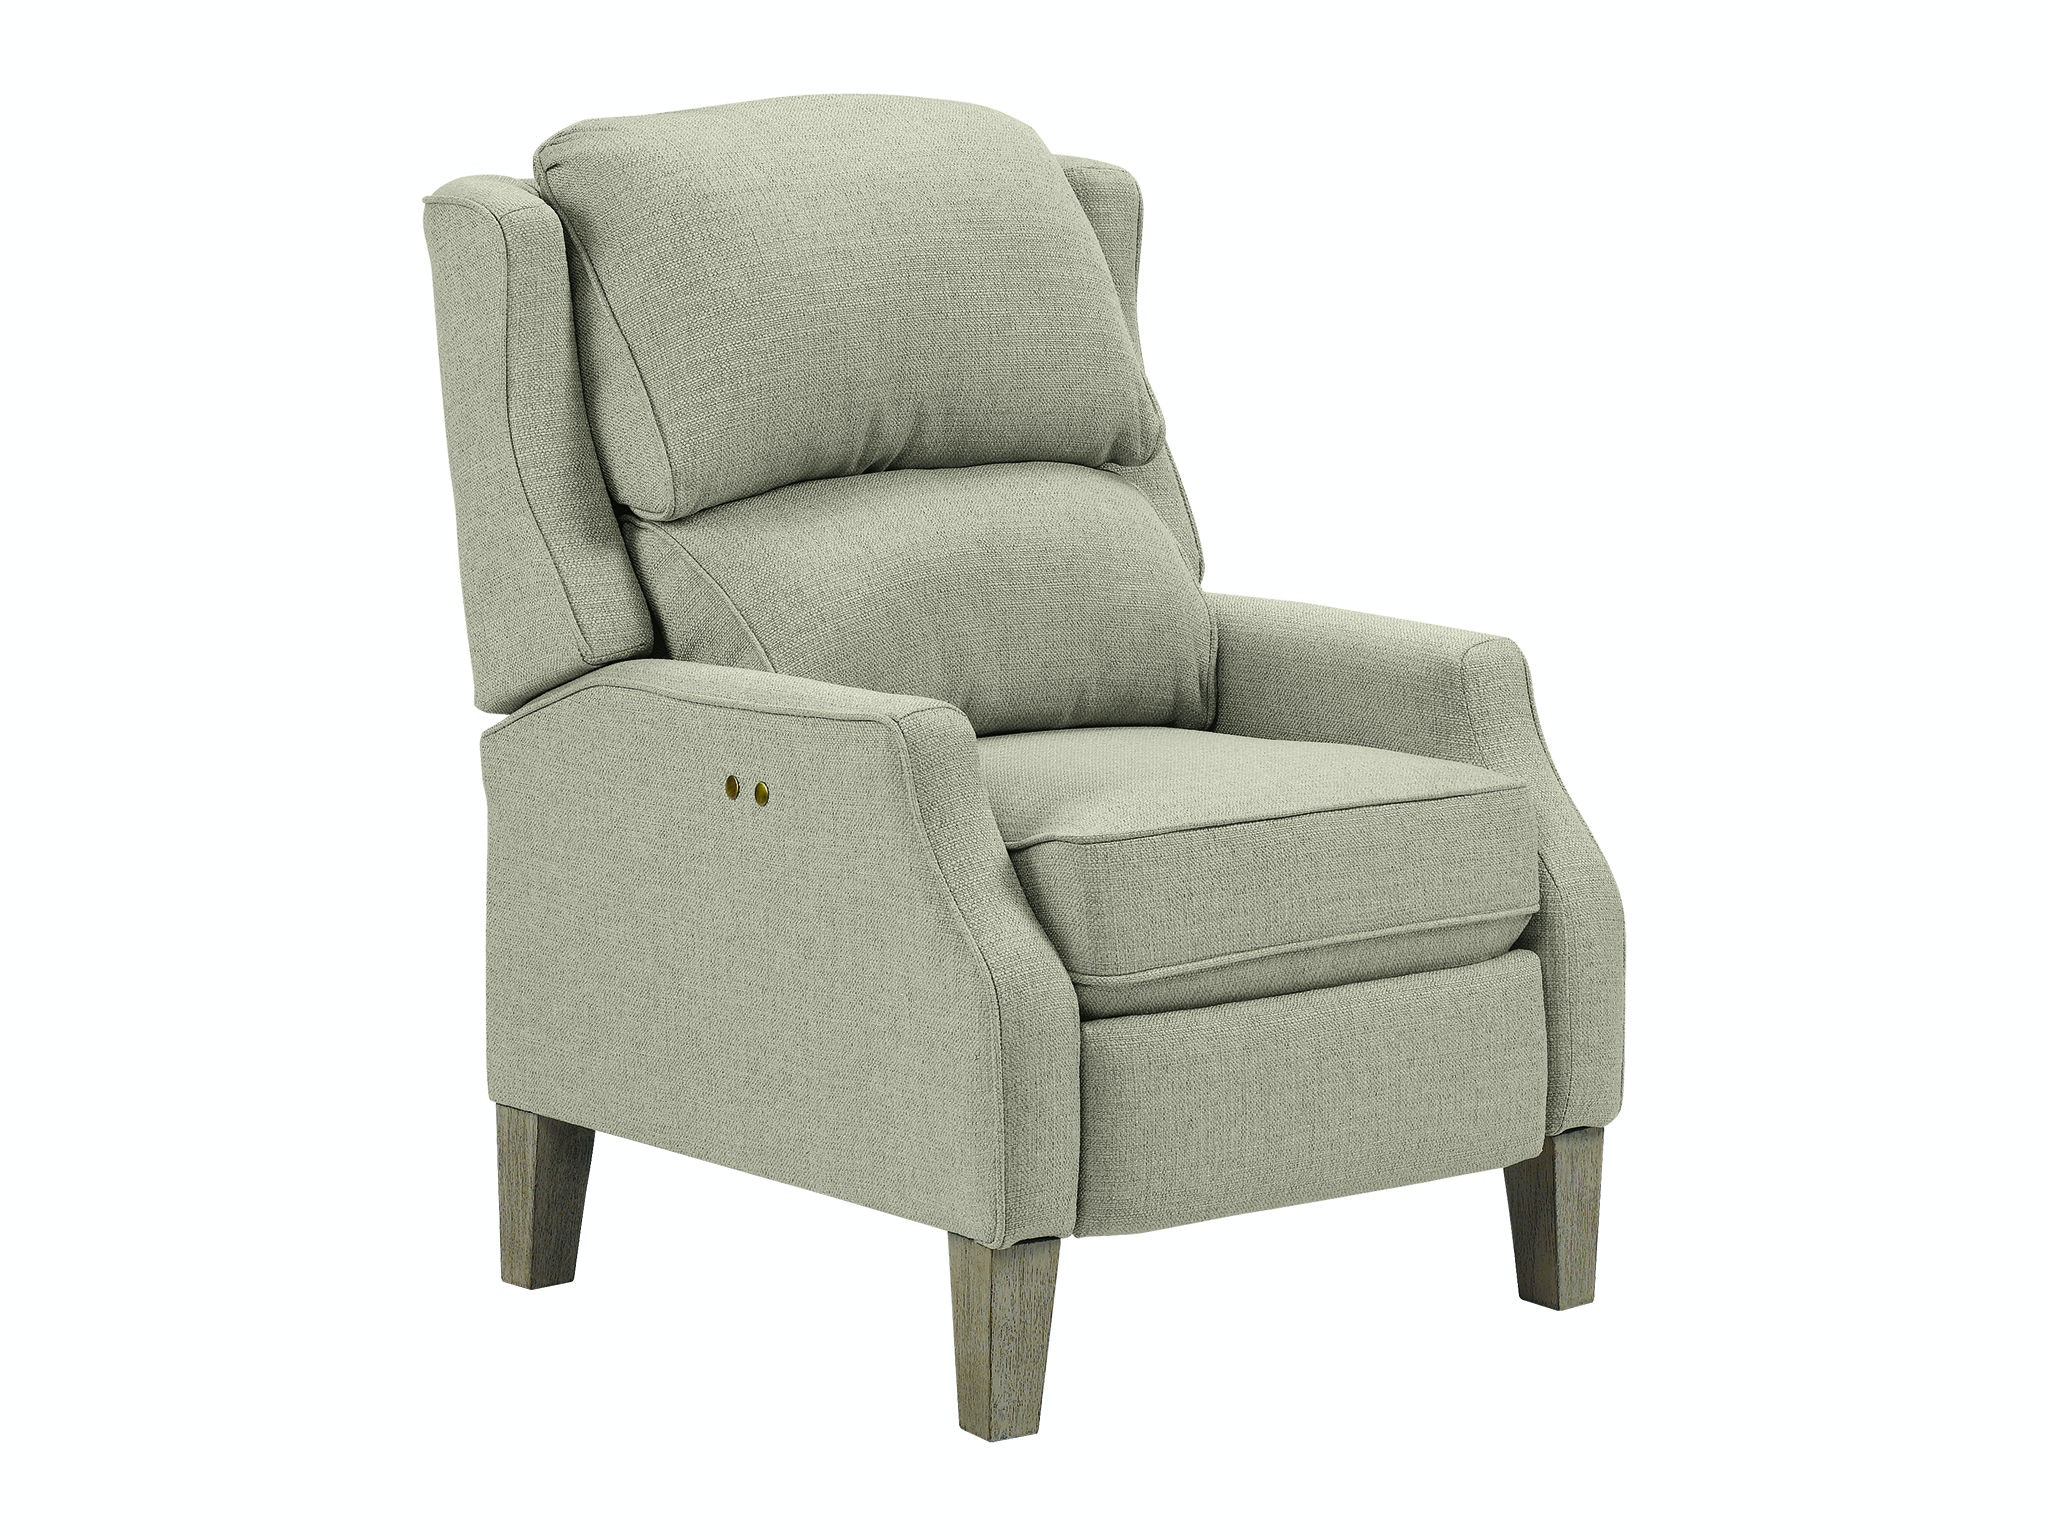 besthf com chairs hanging chair kuwait best home furnishings living room recliner 3lp50ab